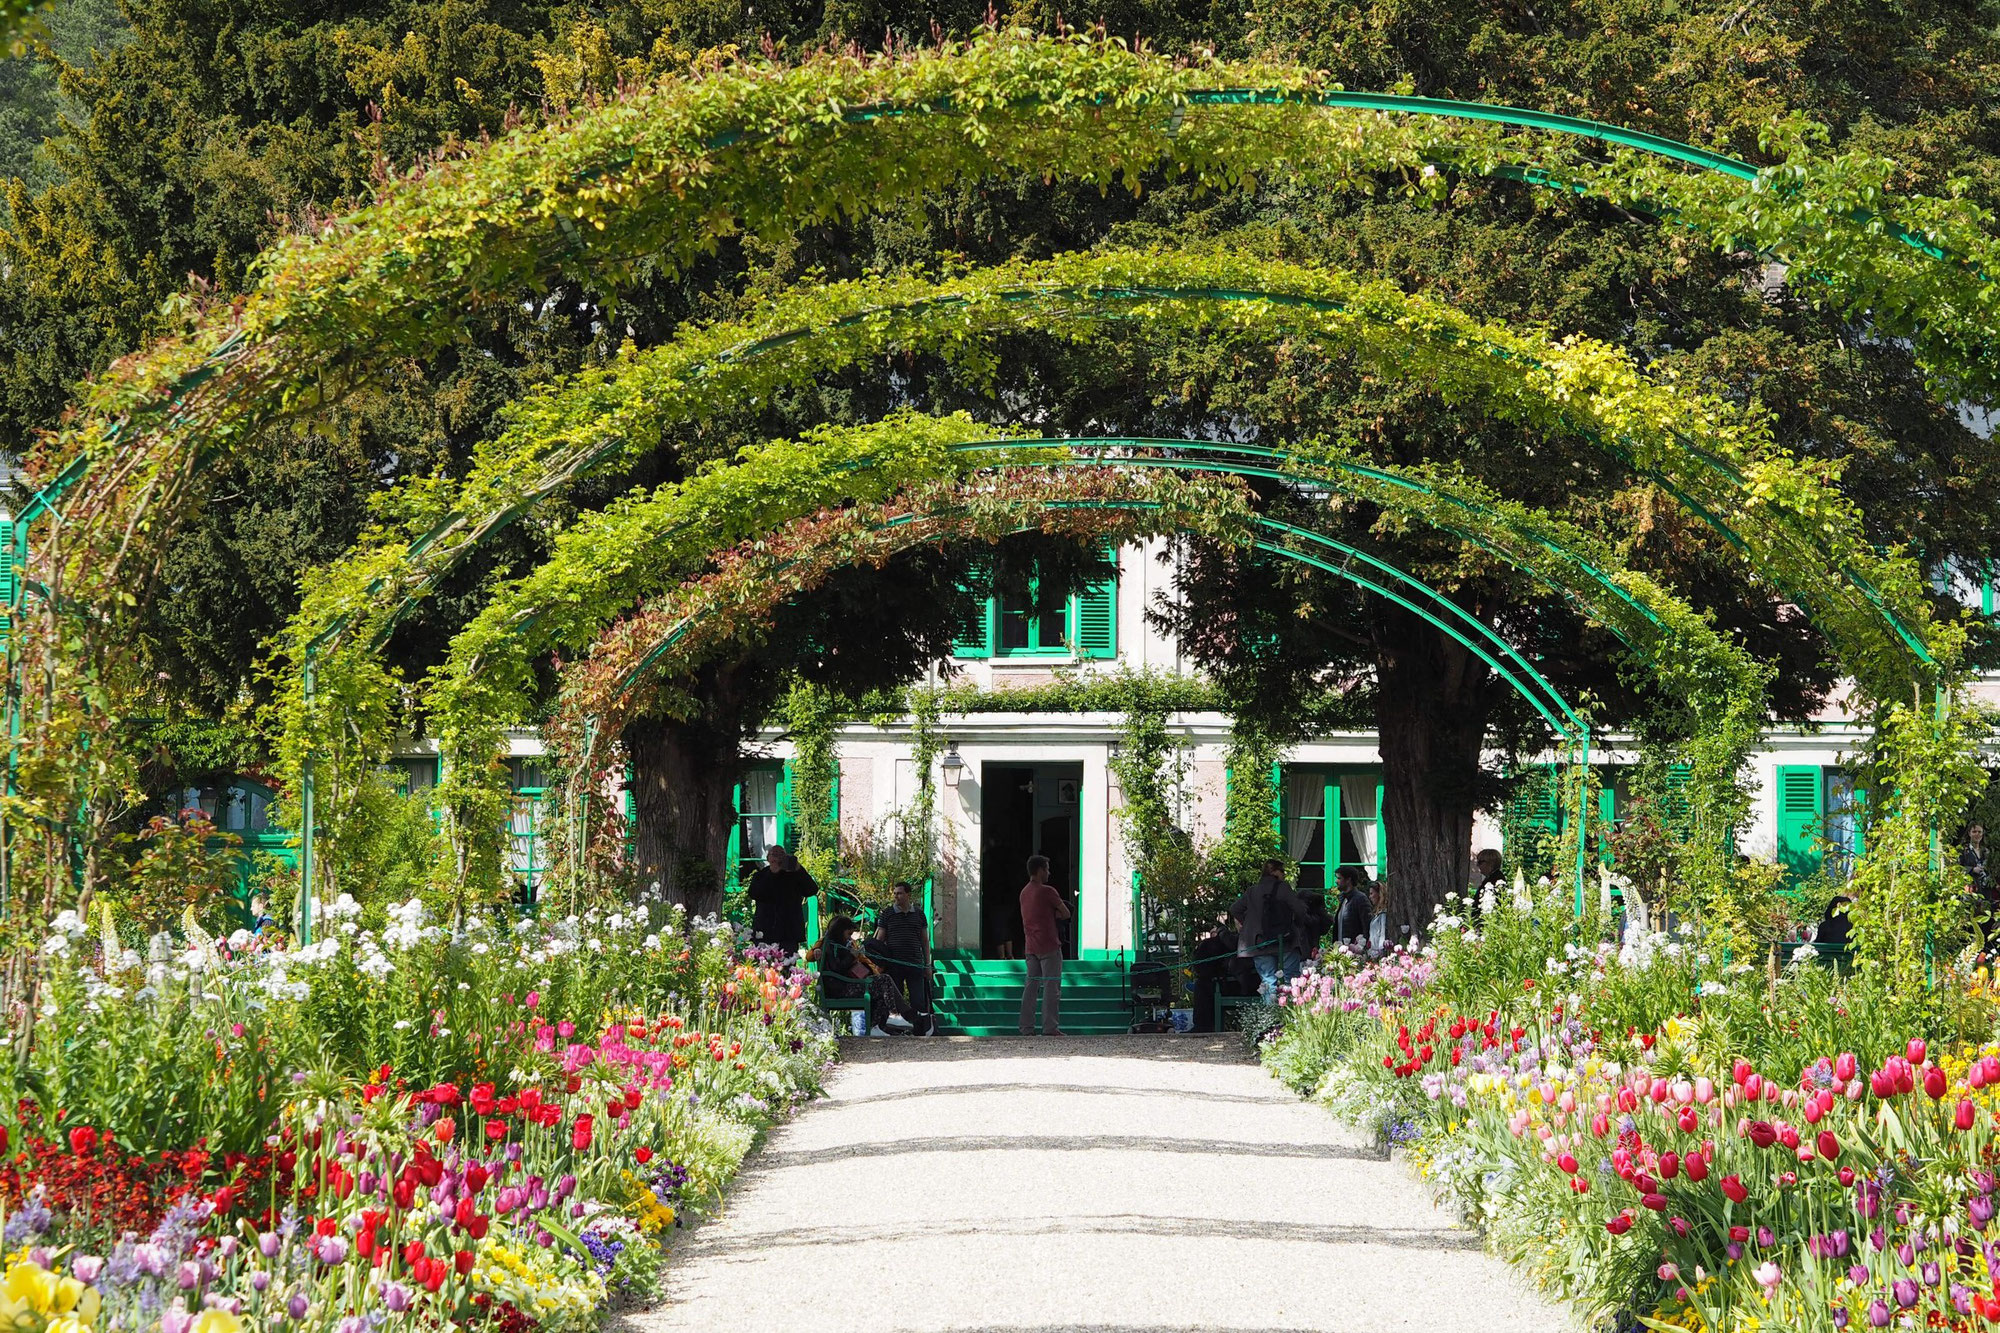 Giverny and Claude Monet